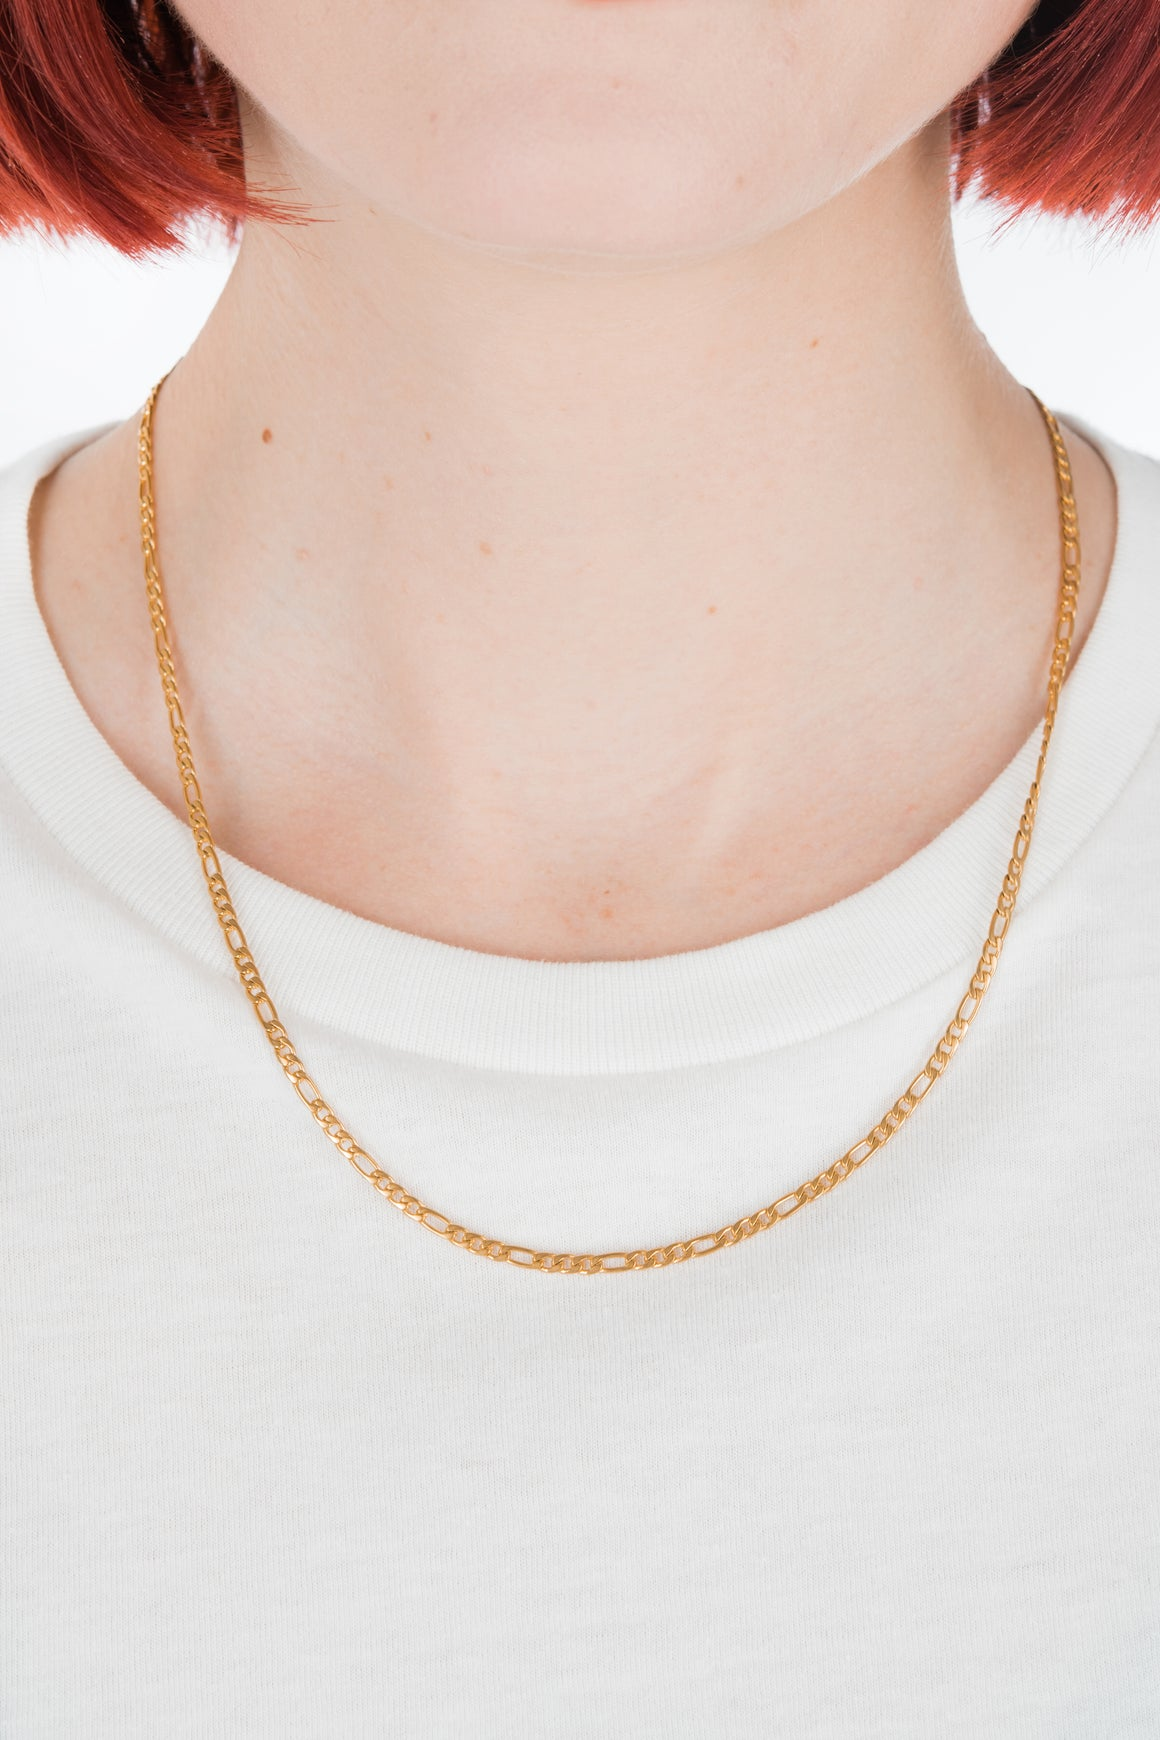 Figaro Chain in Gold - Philistine